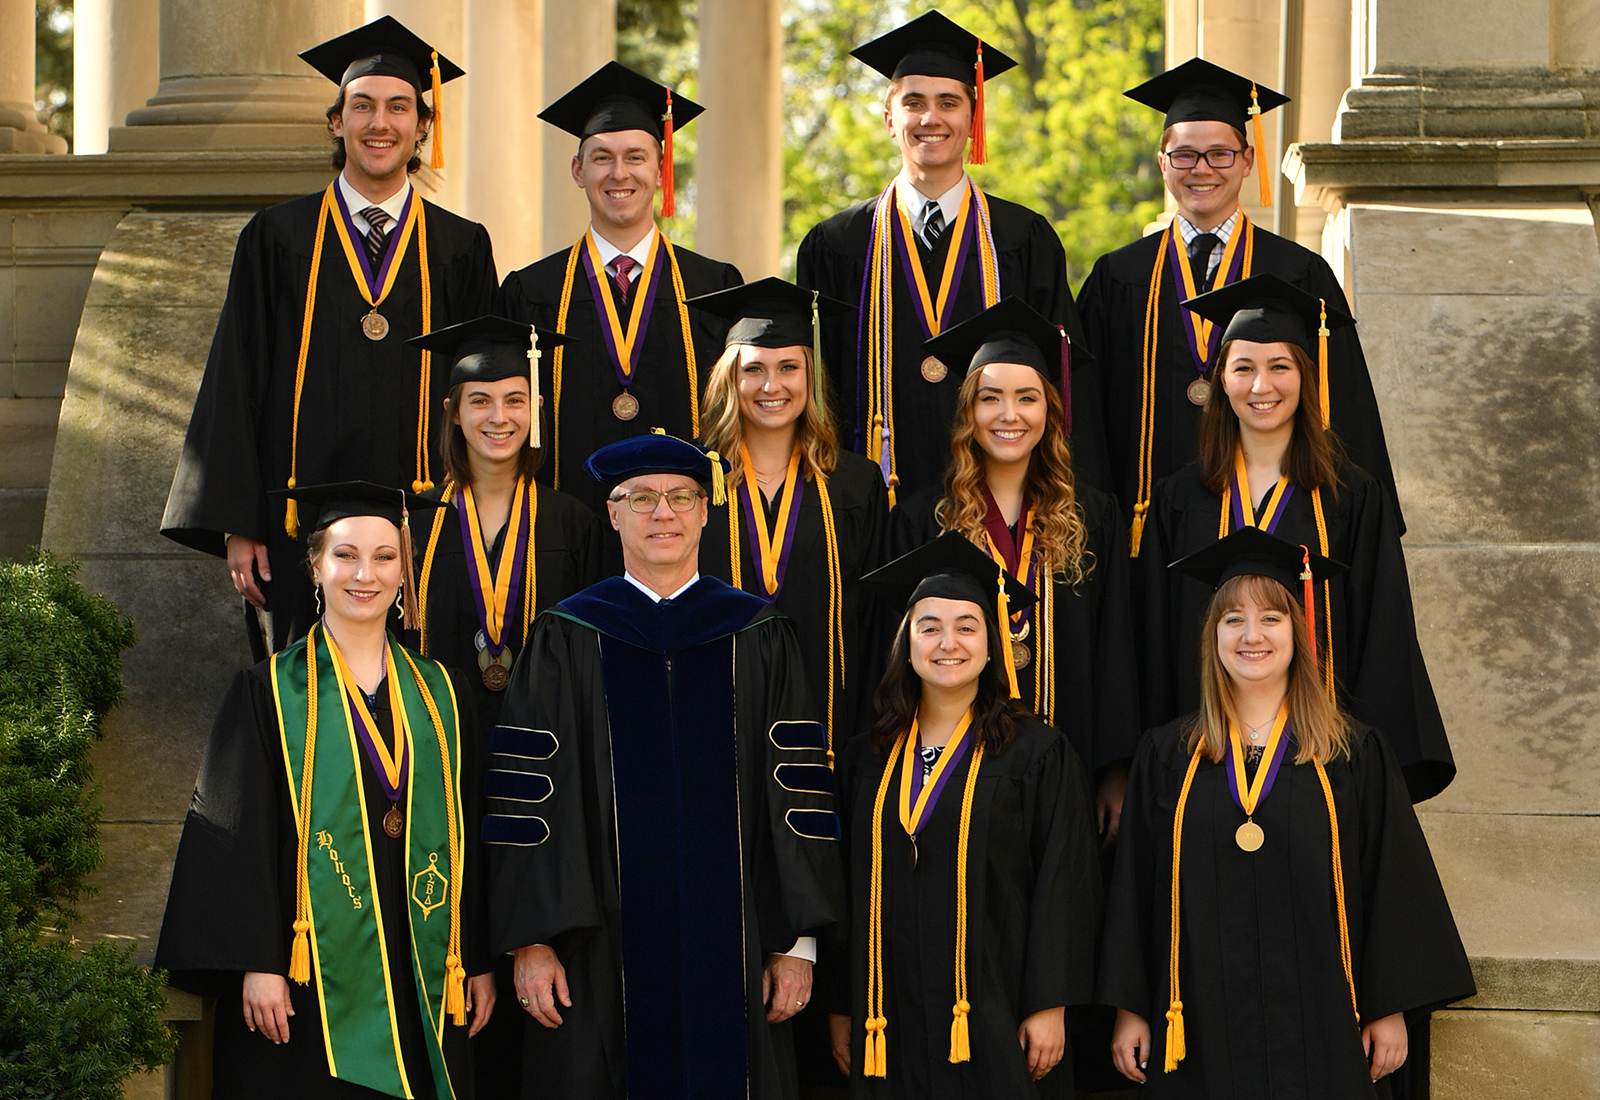 Olivet 2018 graduation honors program graduates may18